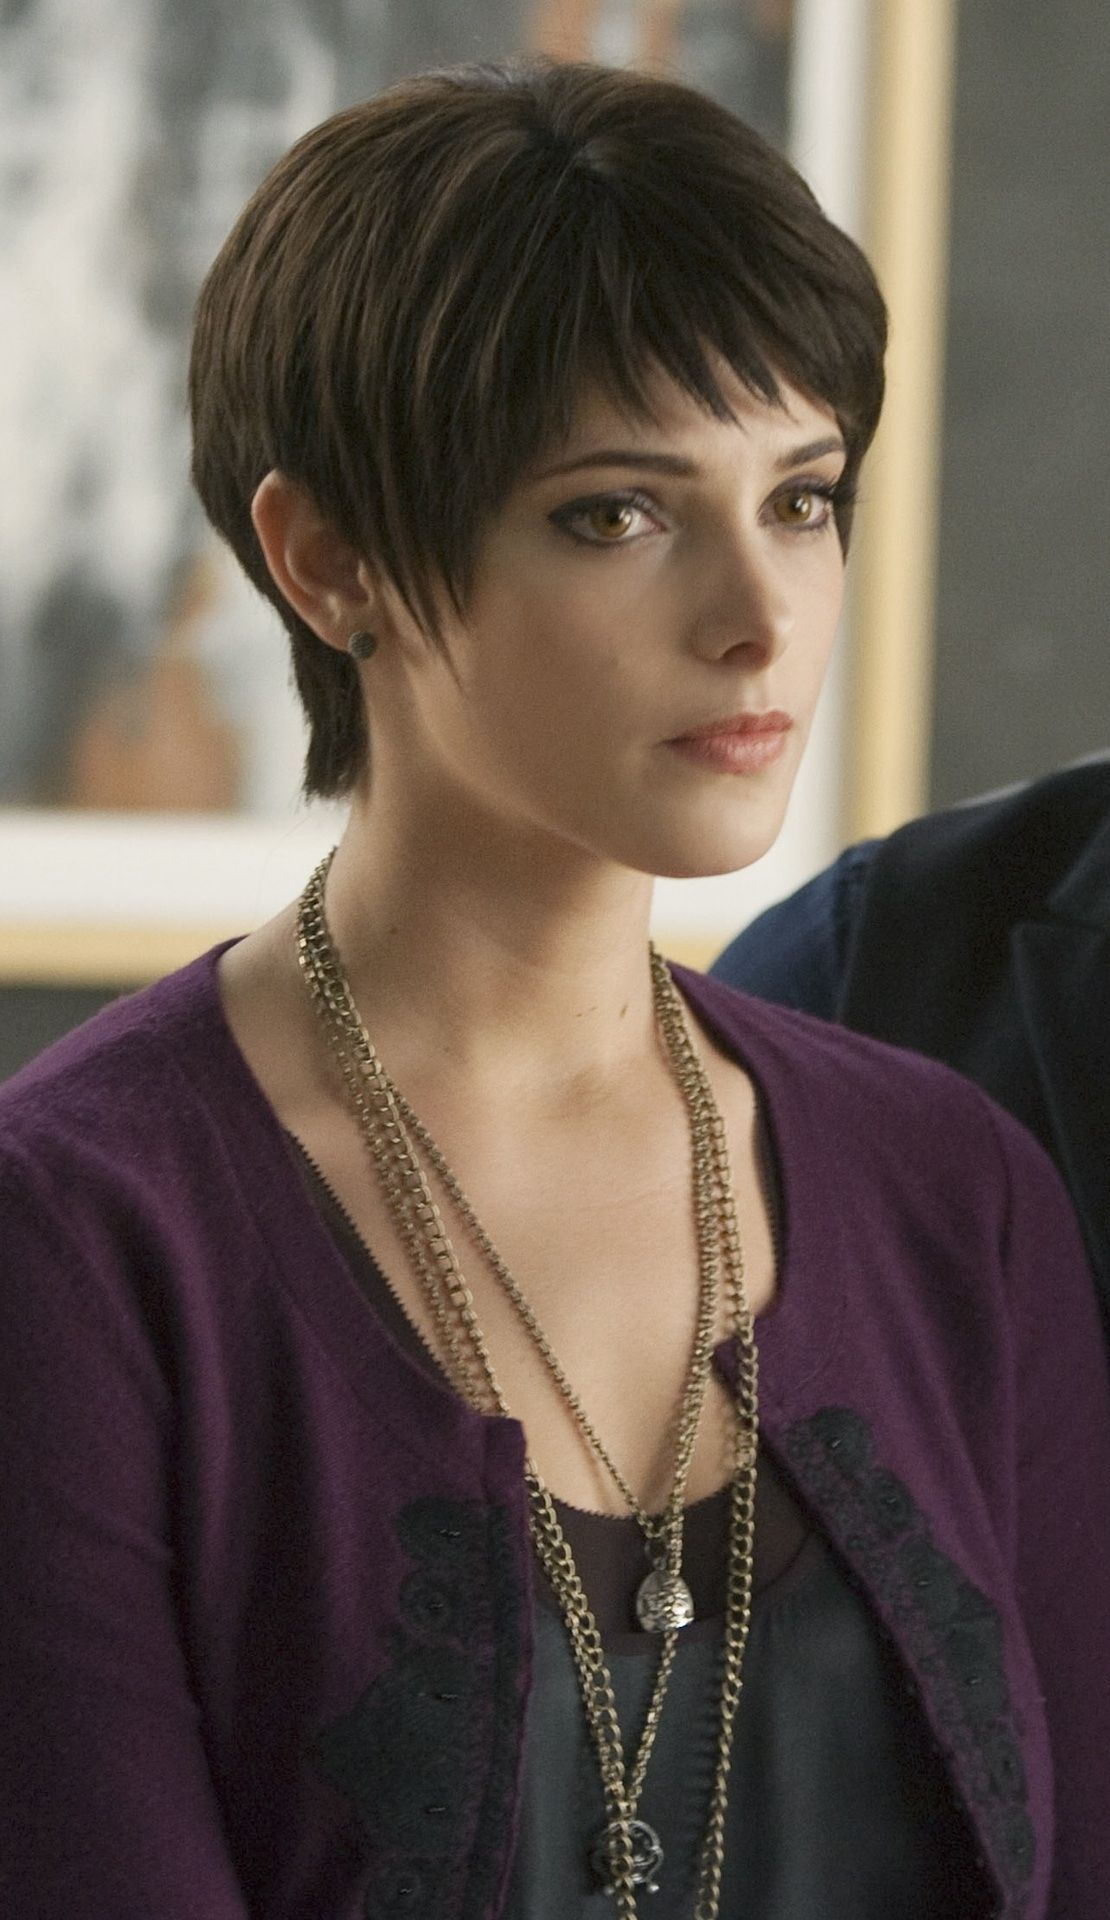 ashley greene twilight hair alice cullen alice breaking